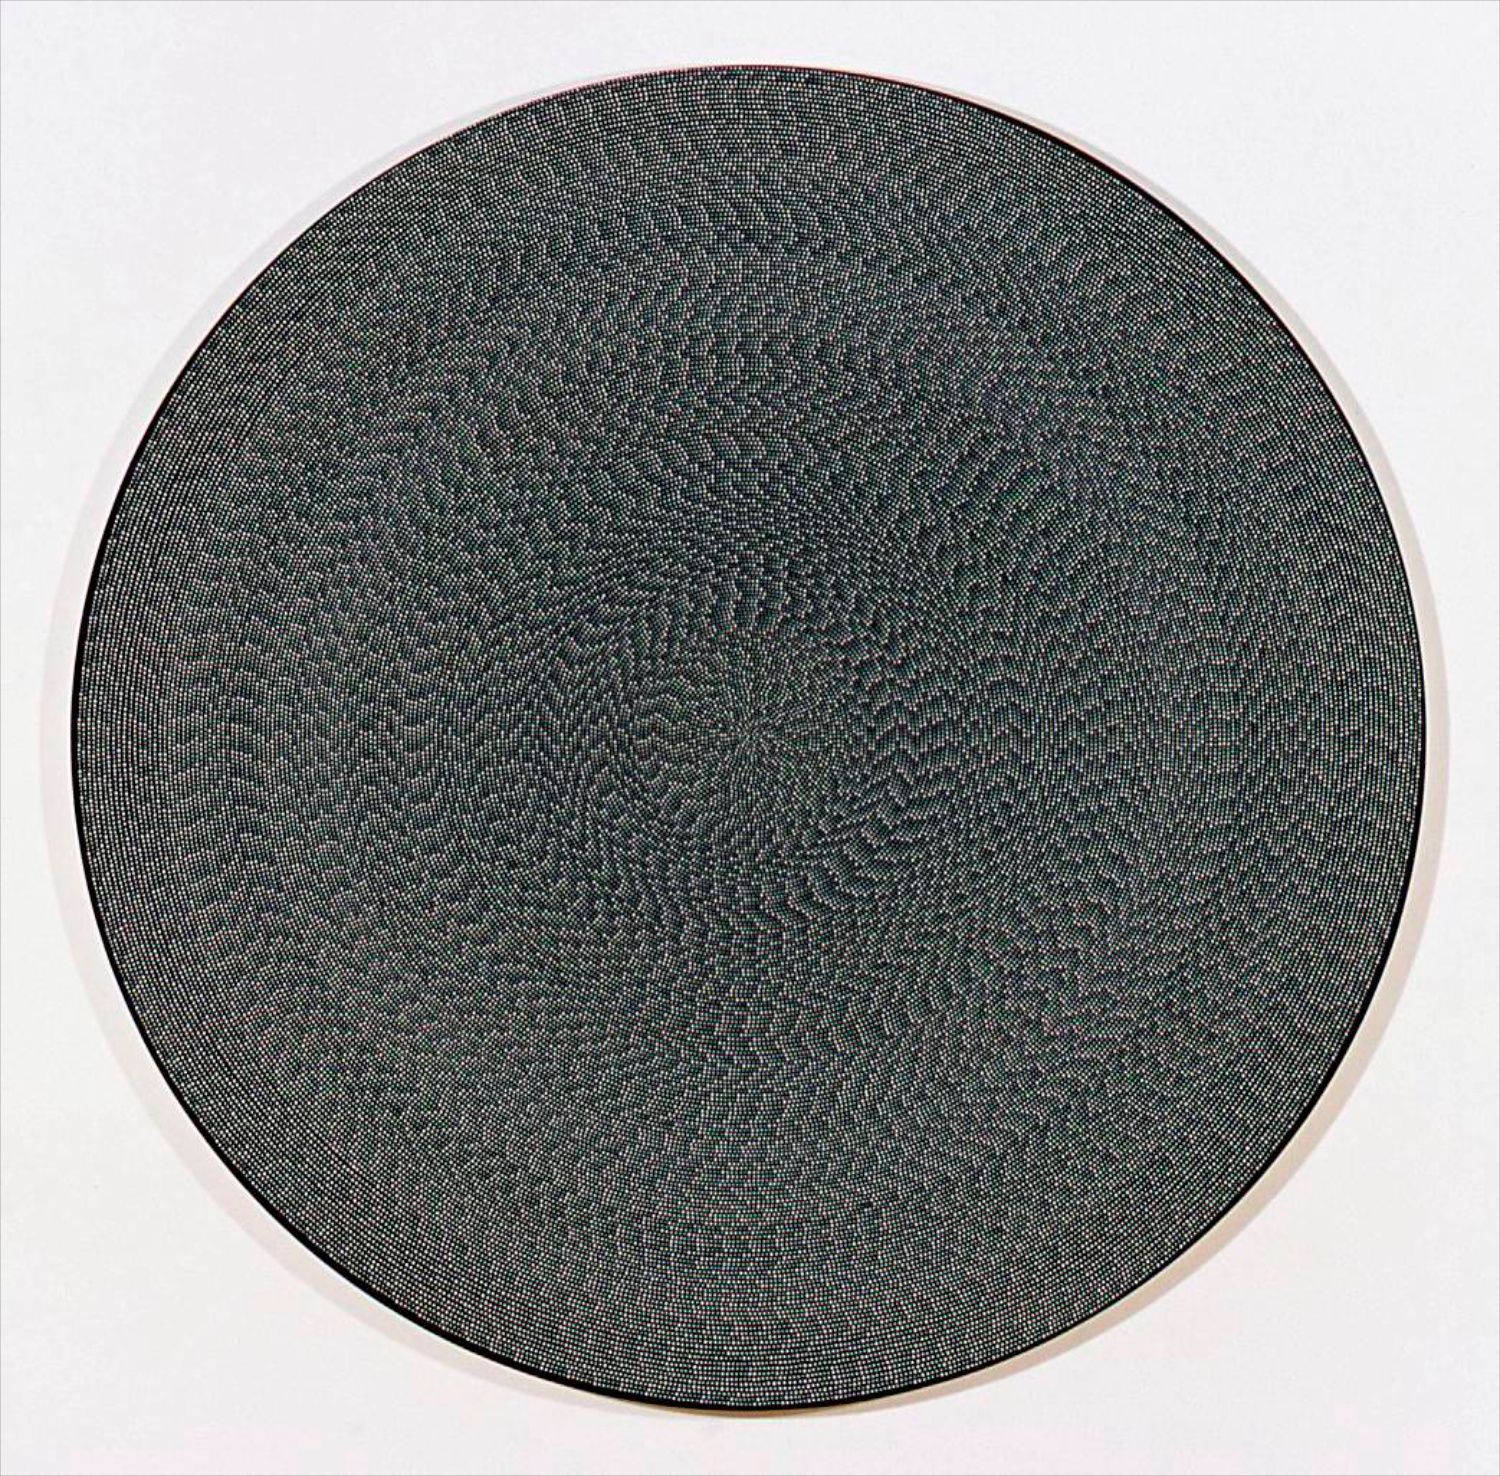 "Michelle Grabner Untitled 2006 Flashe on canvas 70"" diameter MGrab019"